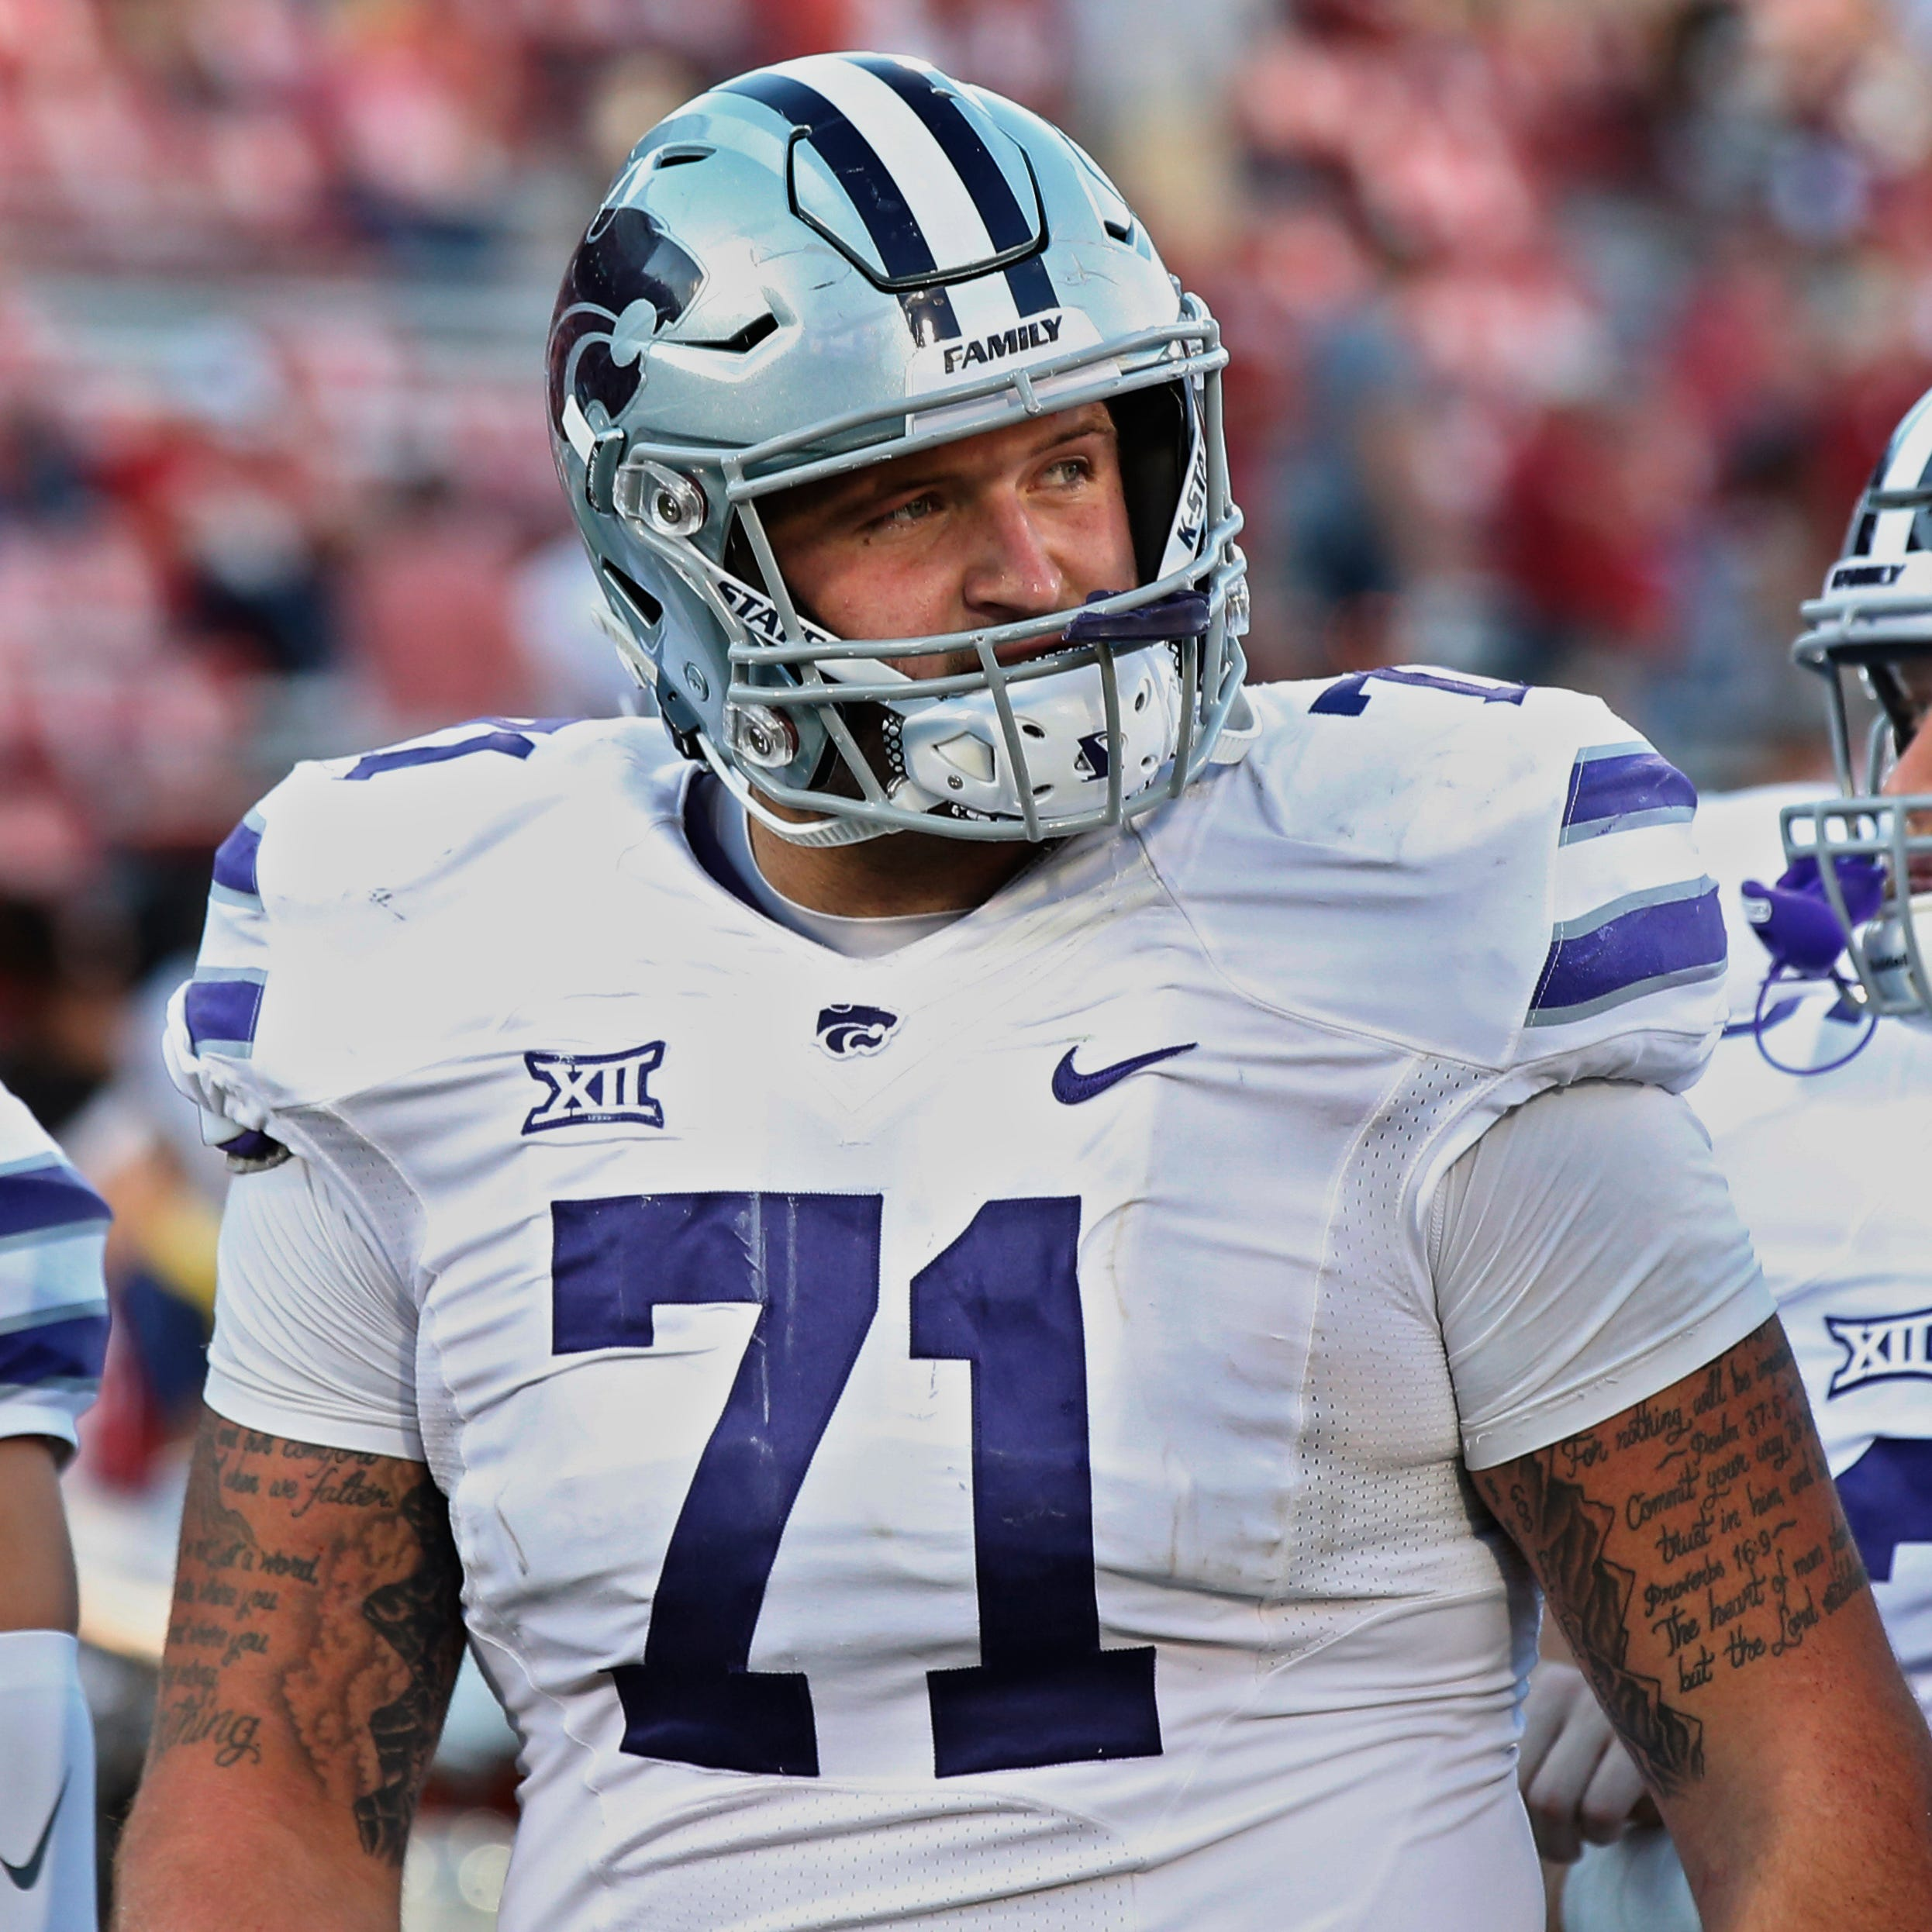 Lions put in extra work scouting offensive line prospects this season